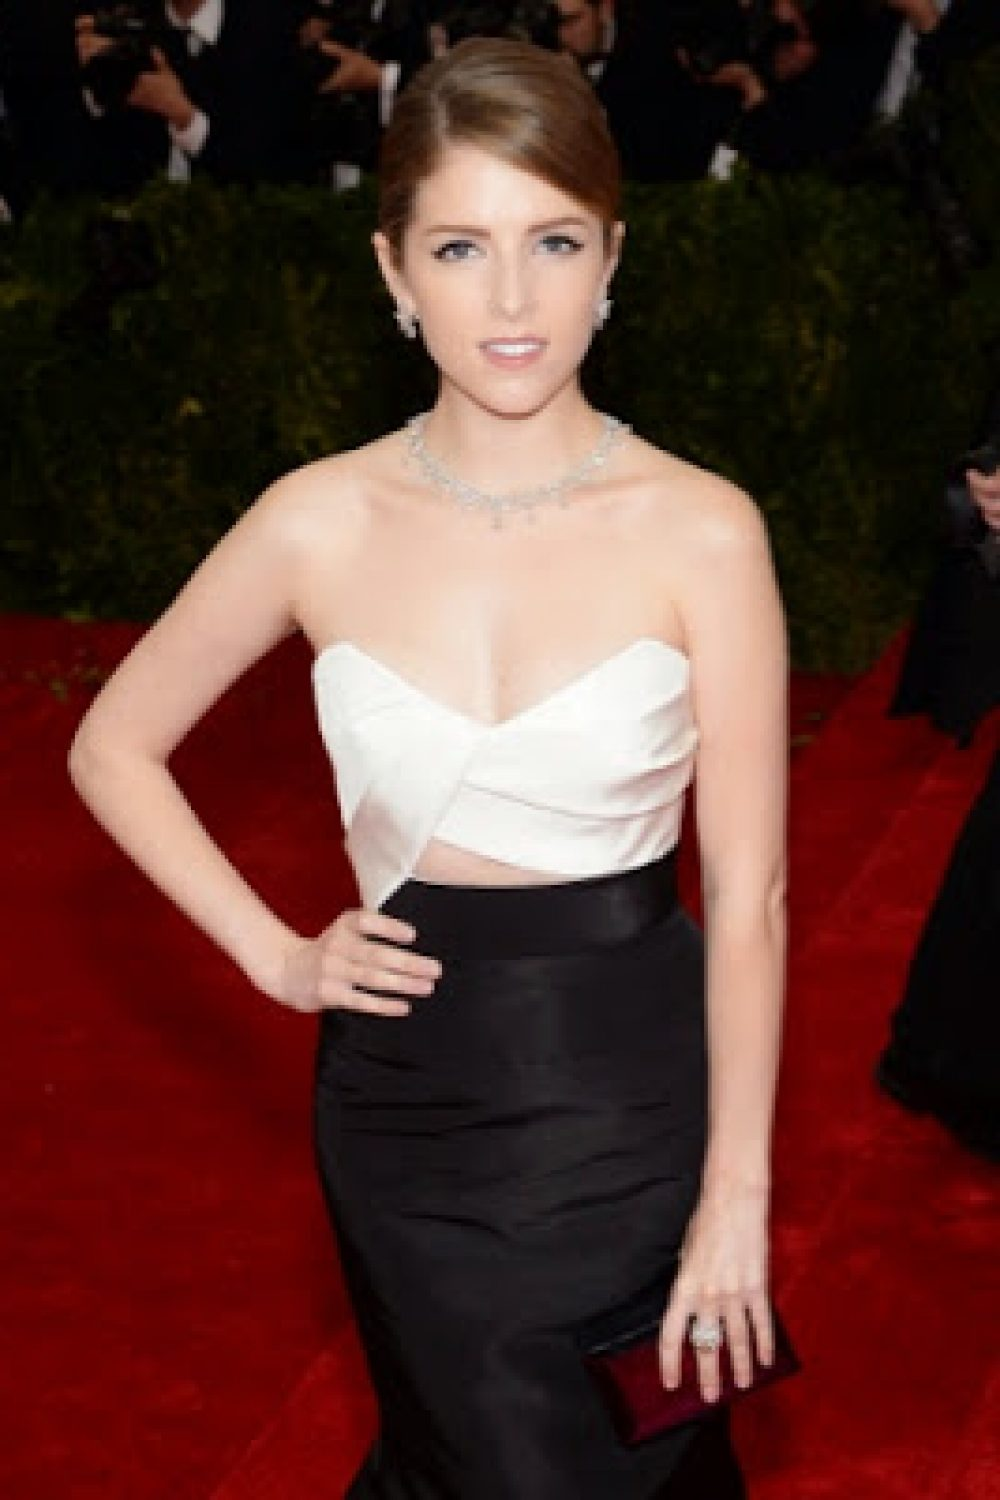 Recreate Anna Kendrick's Met Gala Look with Burt's Bees